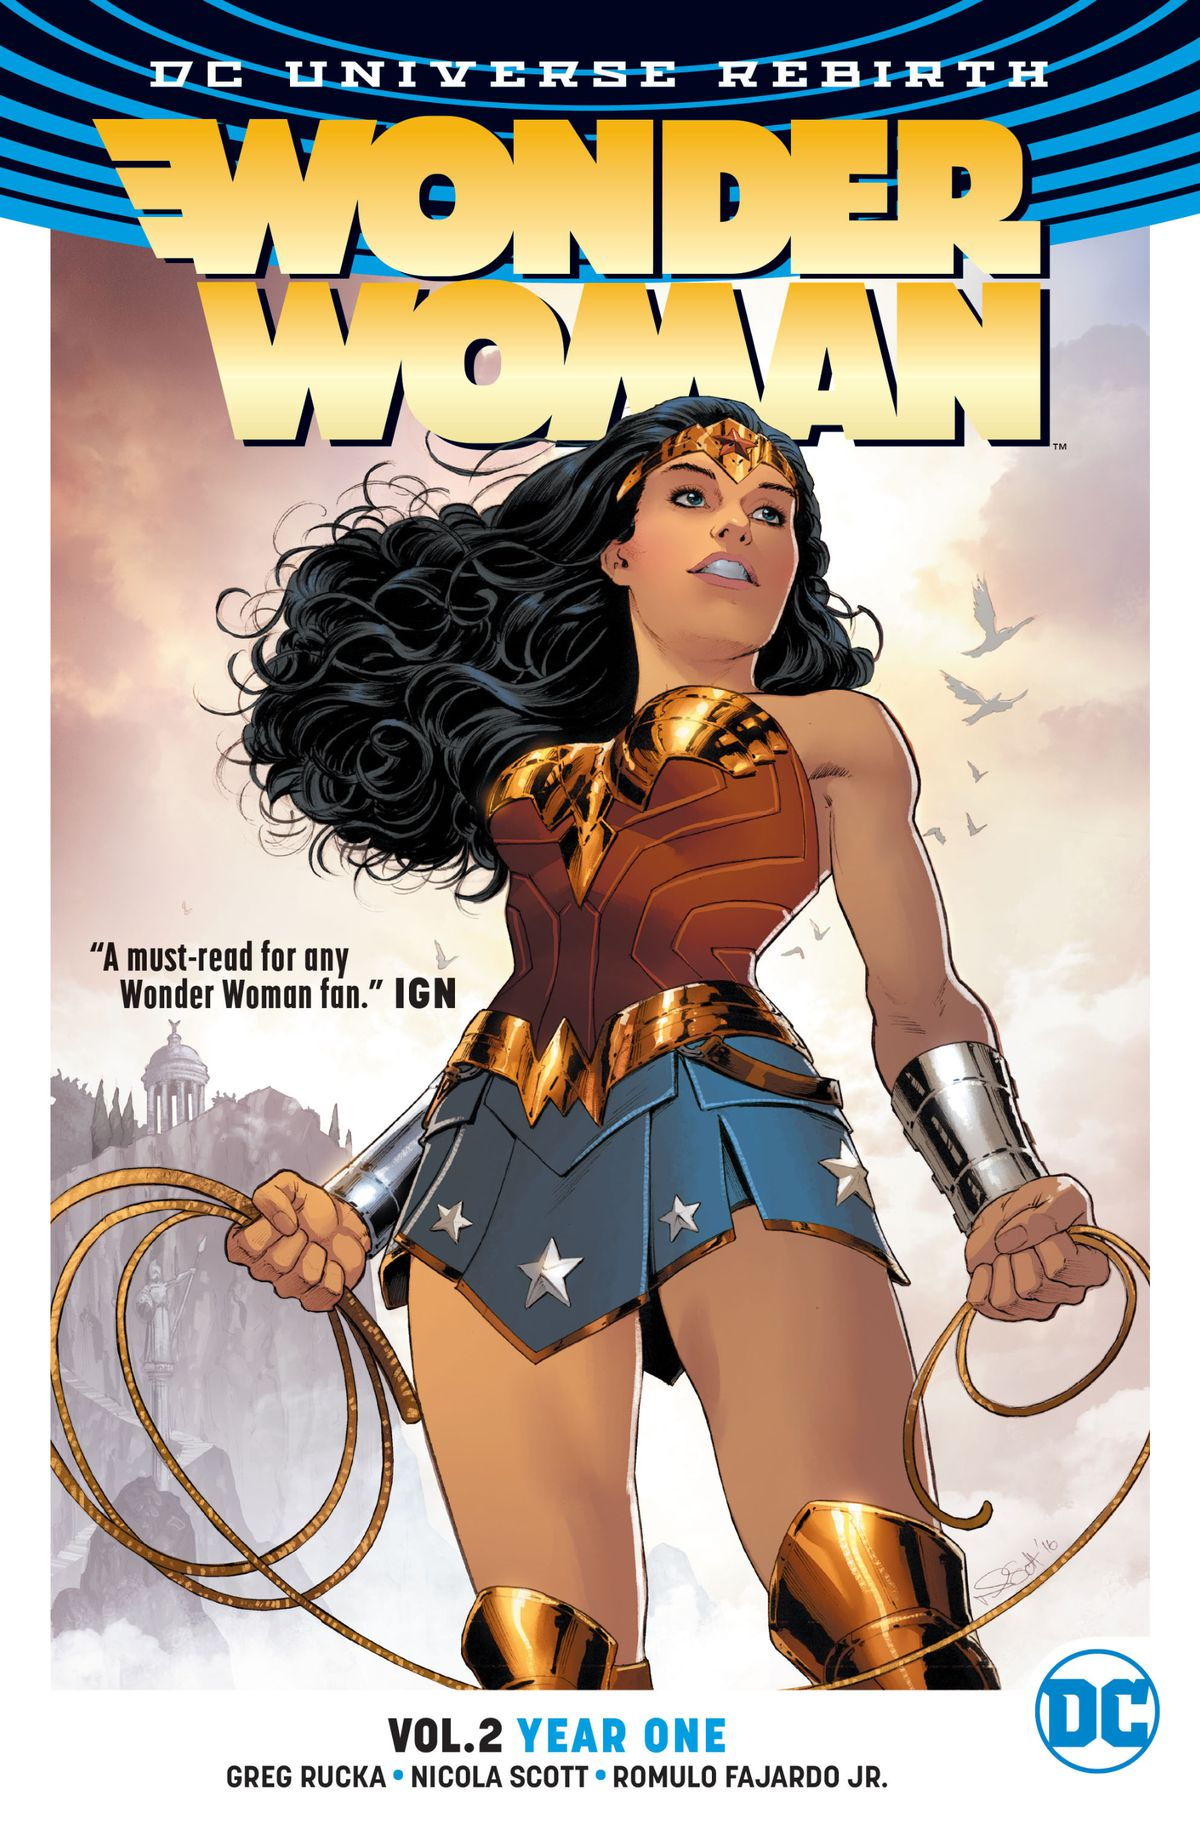 Wonder Woman stands triumphantly on Themyscira with her golden lasso on the cover of Wonder Woman: Year One.